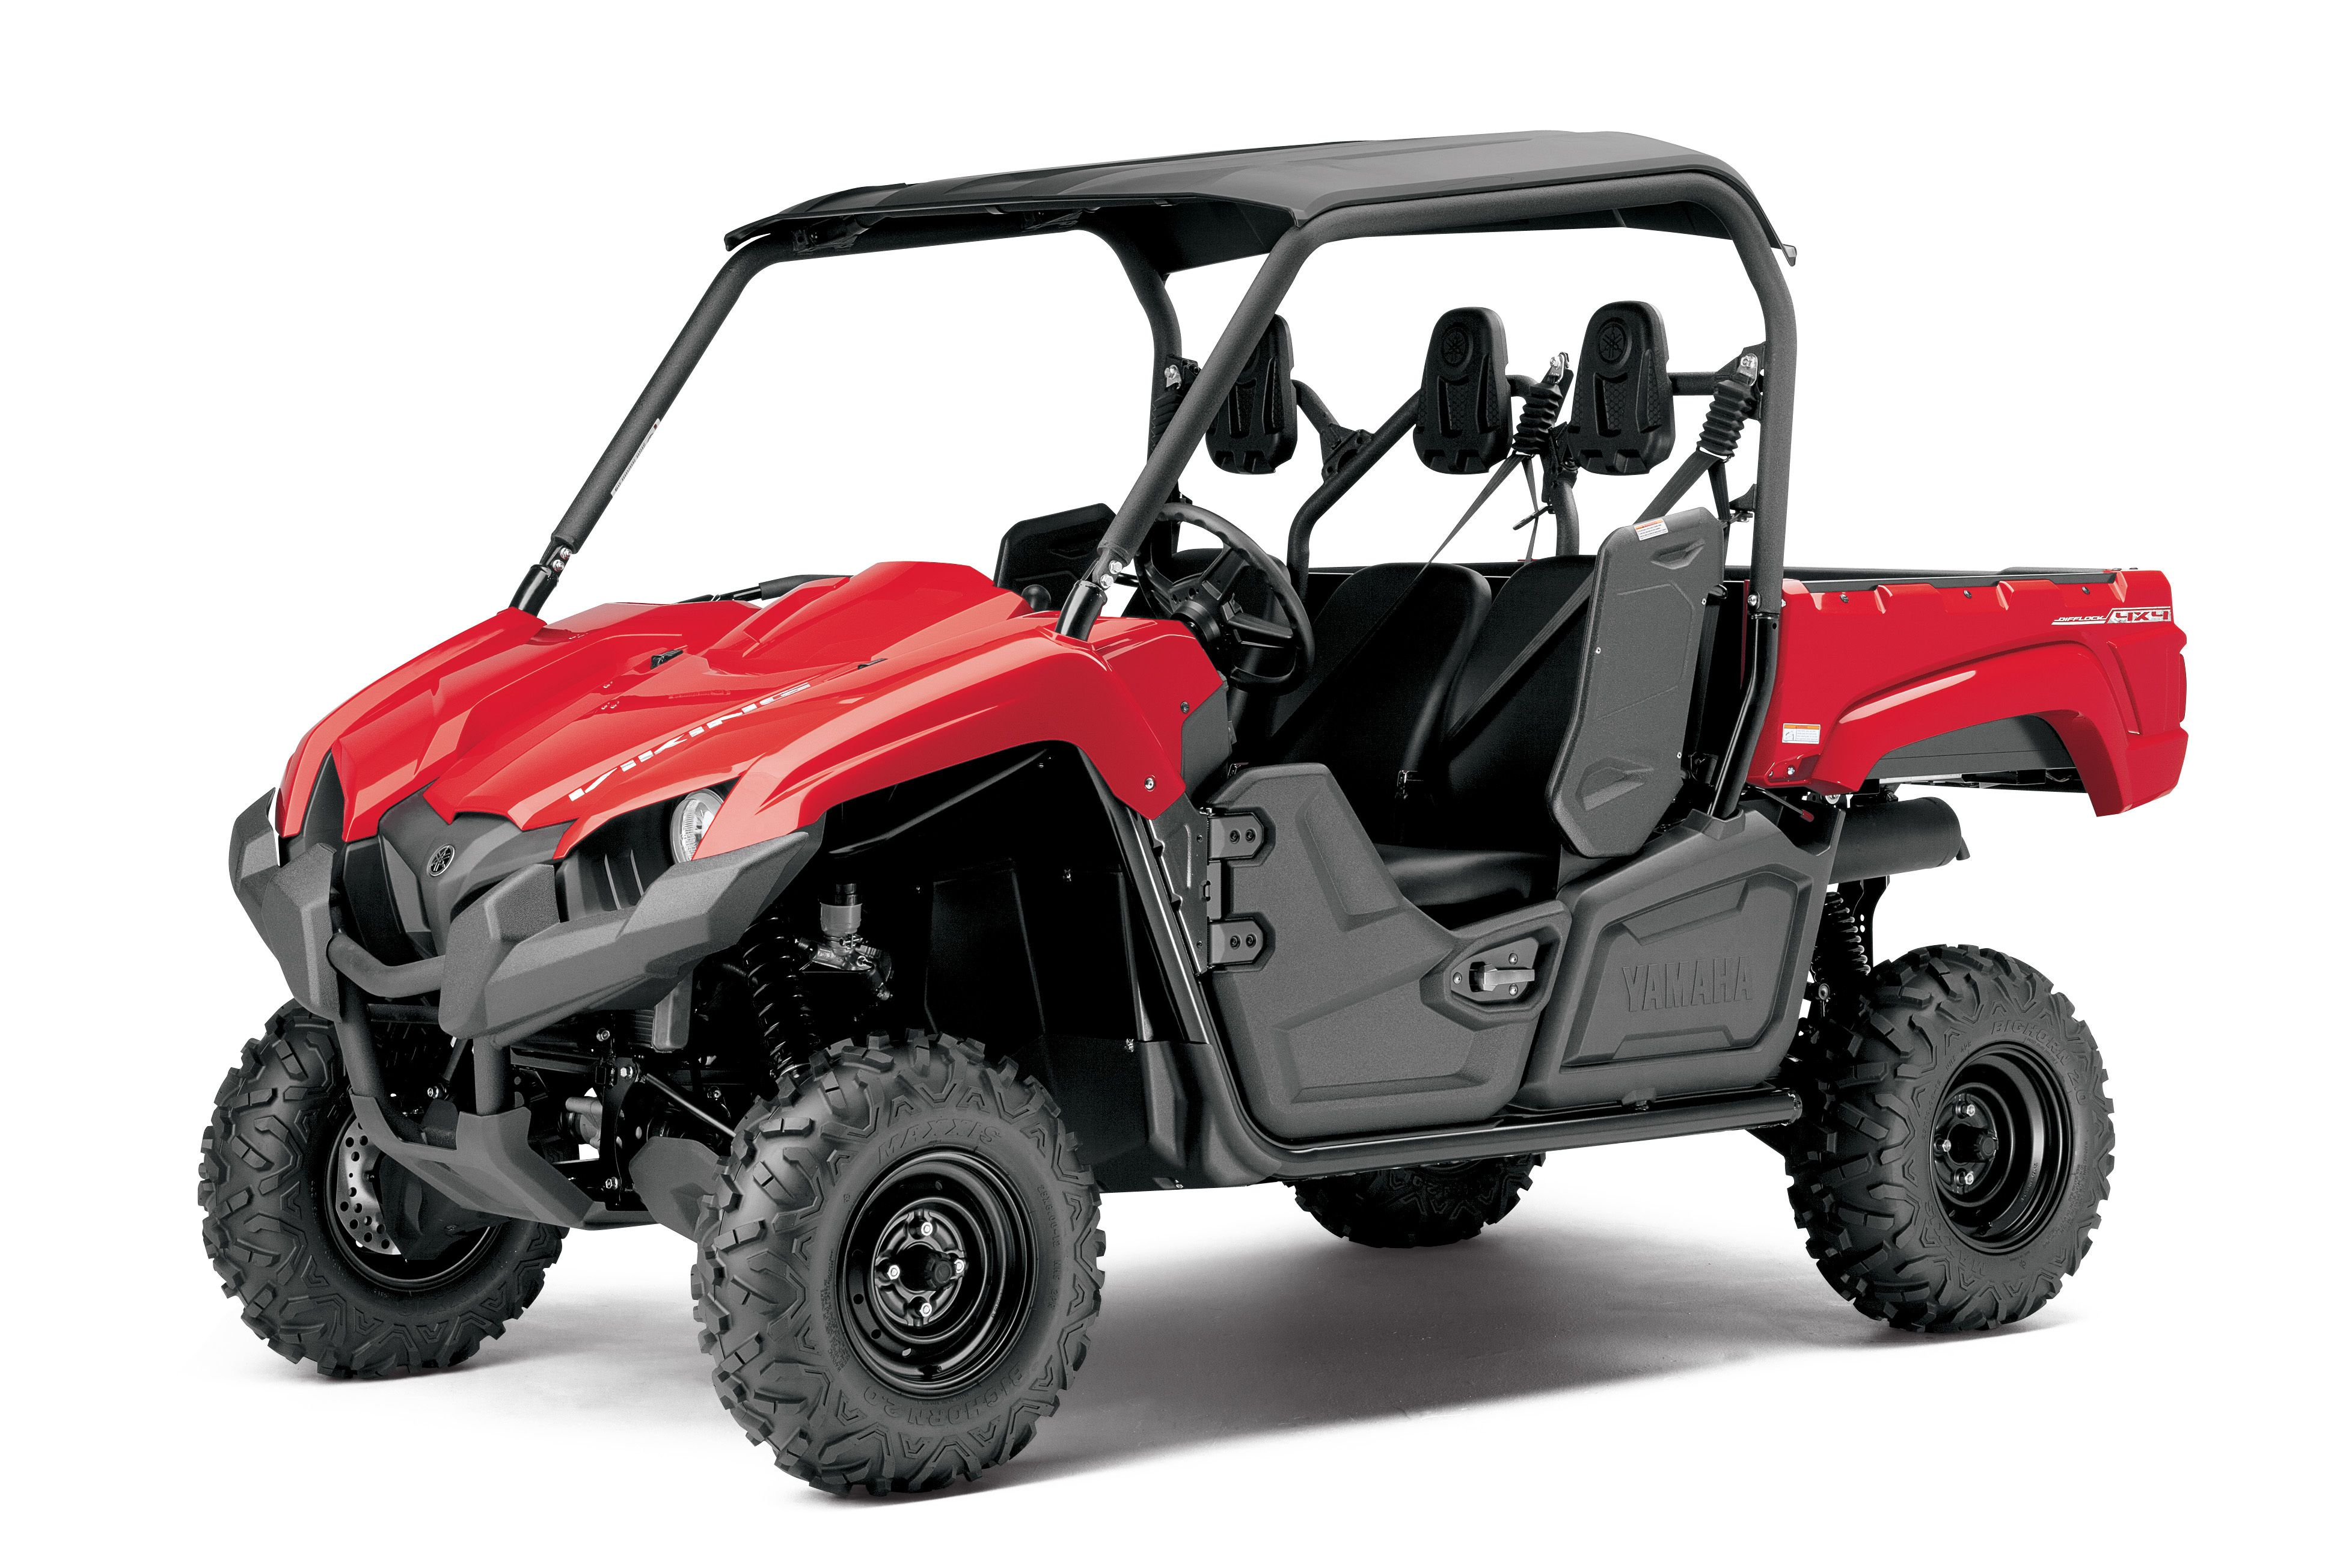 Yamaha announces all new viking side by side vehicle